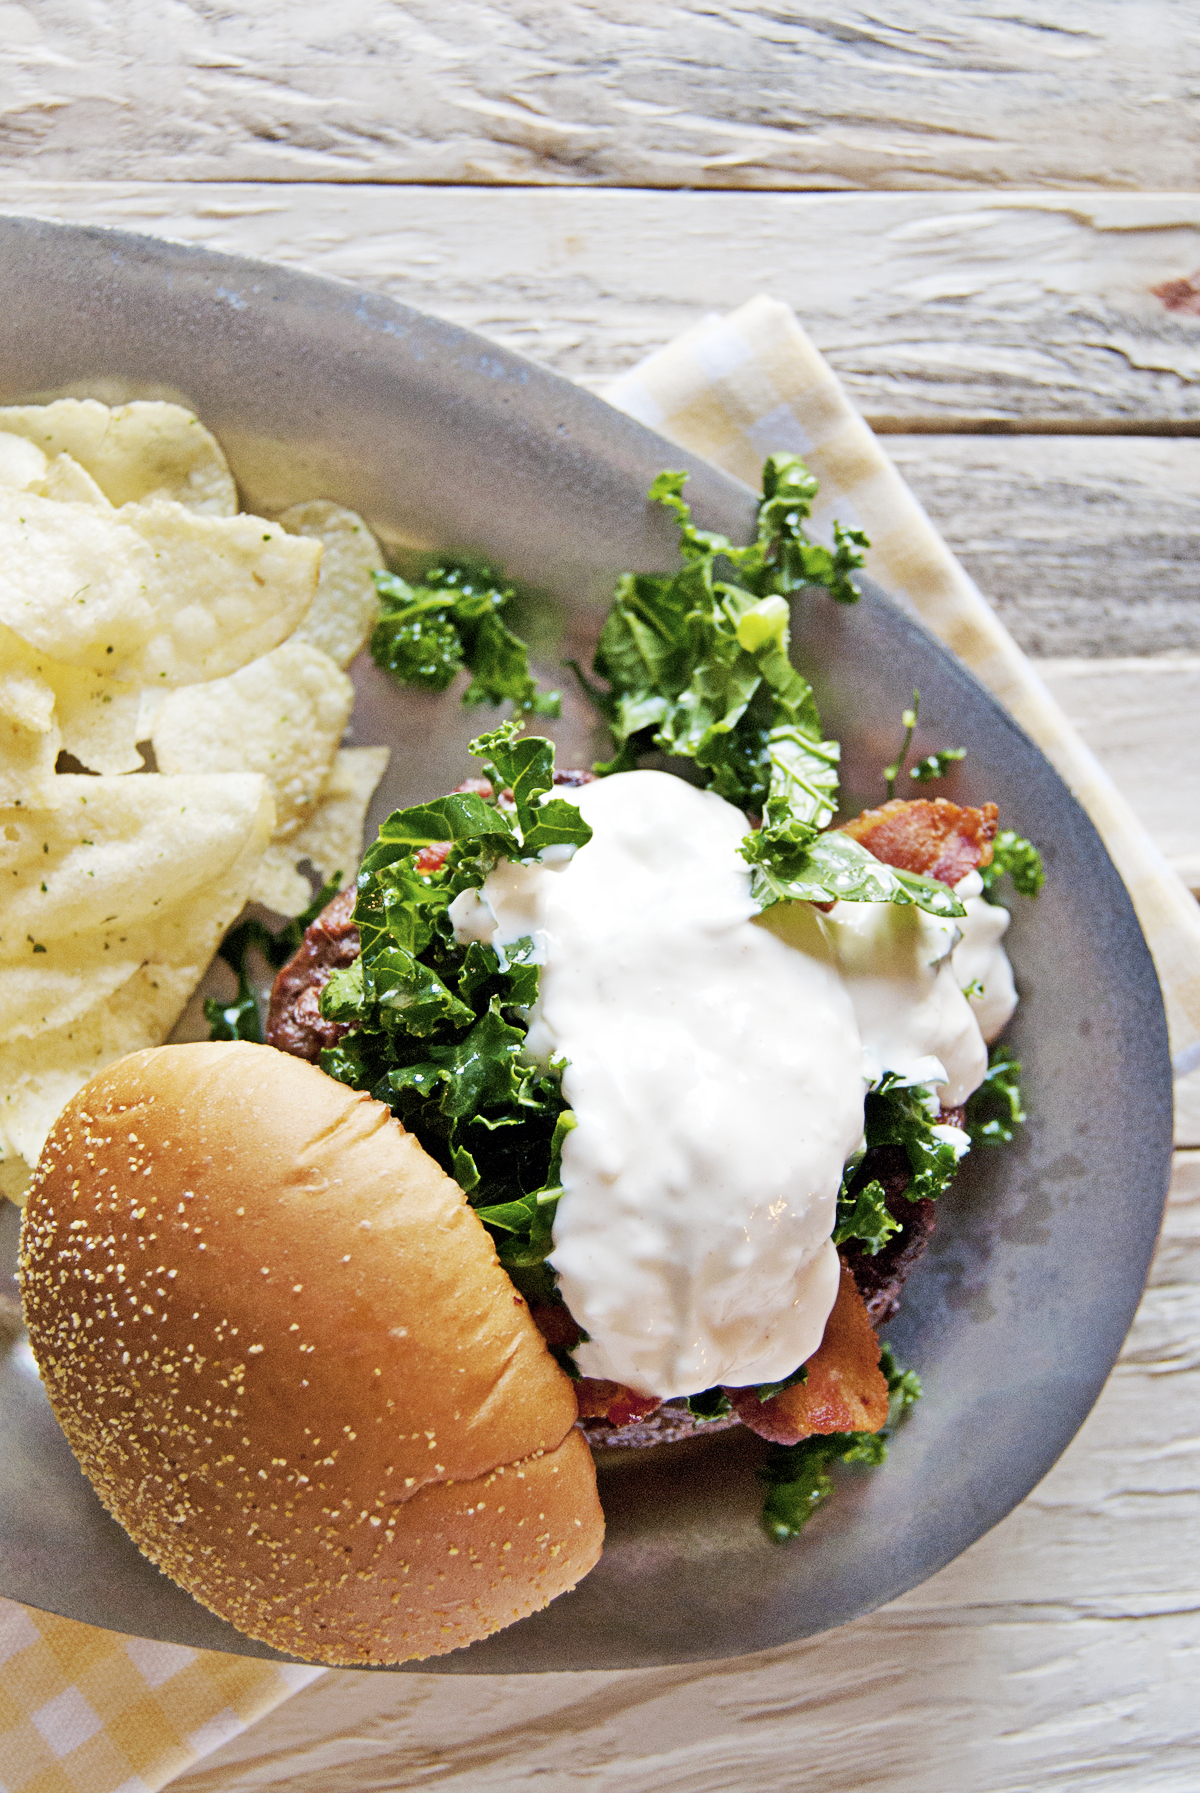 These tasty ancho chili burger are paired with a macerated kale slaw and a creamy goat cheese ancho mayo!